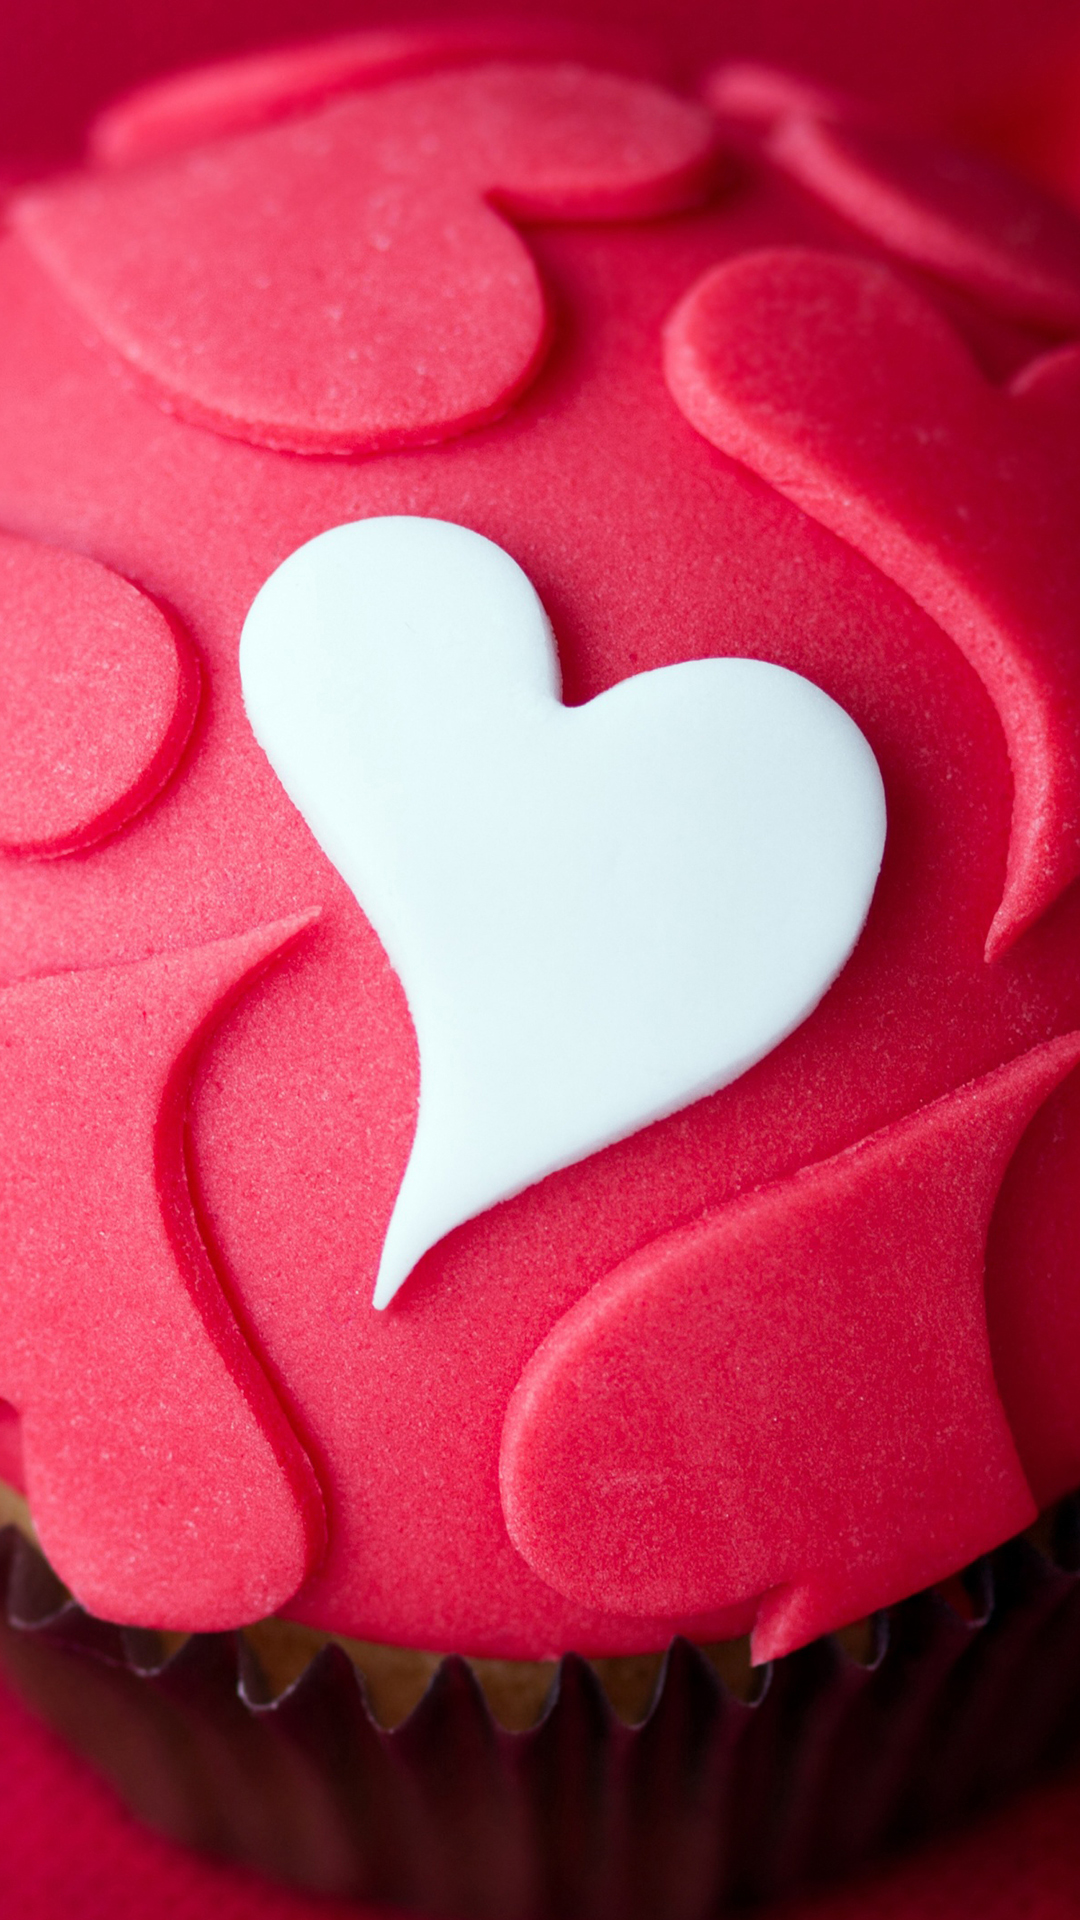 Retina Hd Valentine S Day Wallpapers For Iphone